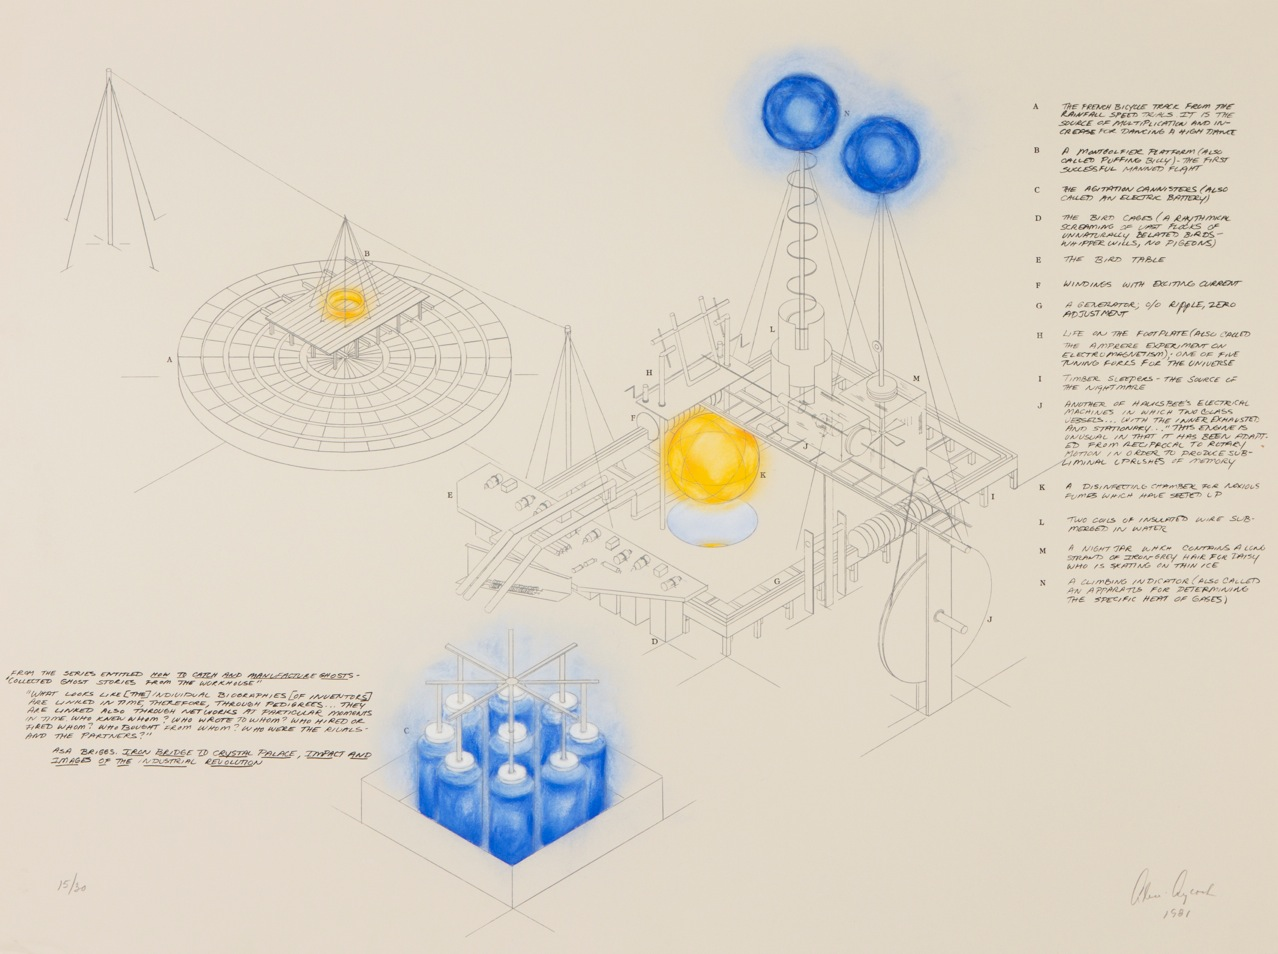 Alice Aycock, How to Catch and Manufacture Ghosts , 1981,Photo-etching and watercolor (XVII/XXX),Polk Museum of Art Permanent Collection 2002.21.1,Gift of Norma Canelas and William D. Roth.